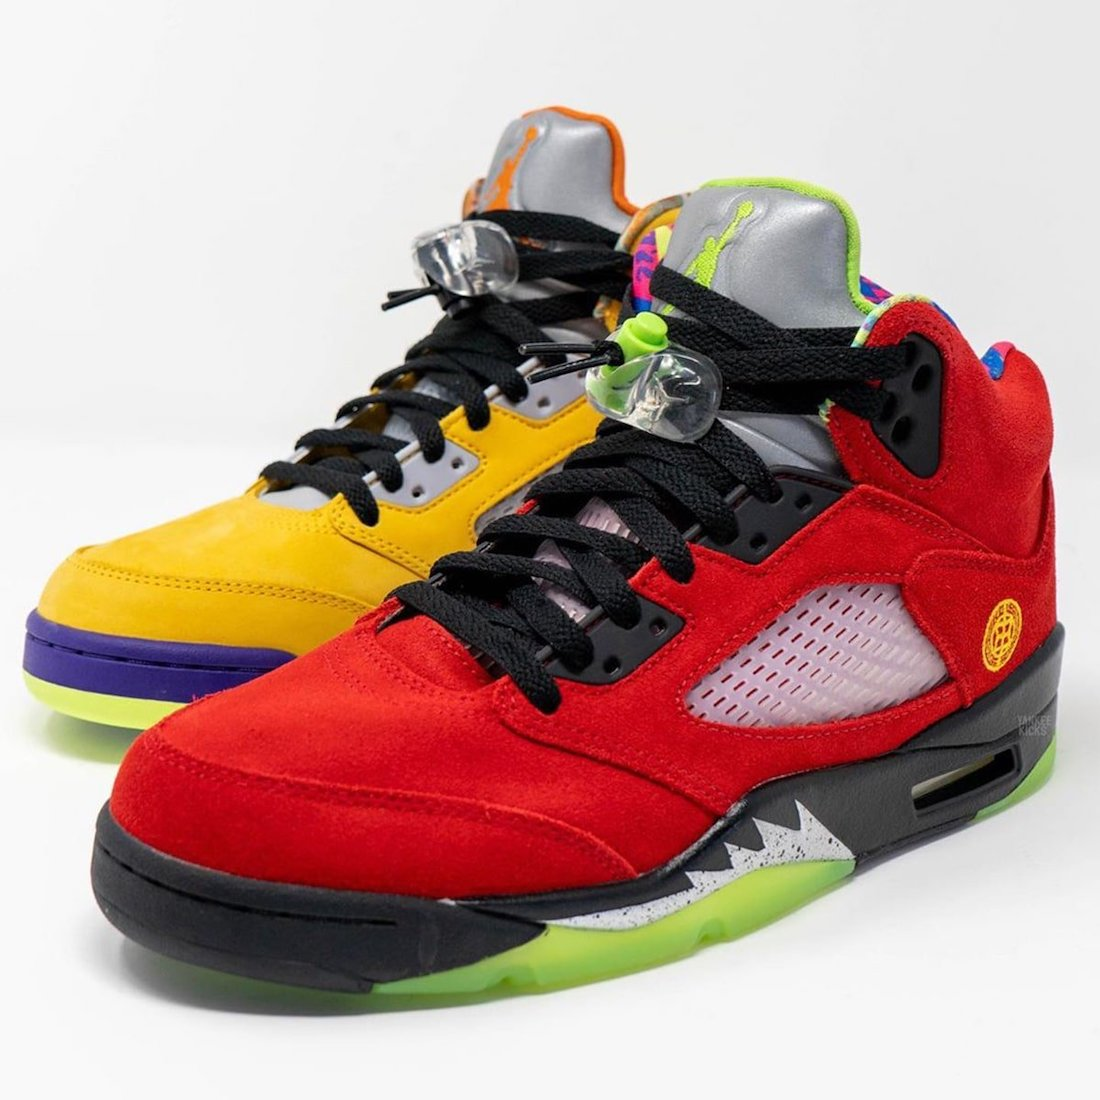 Air Jordan 5 What The Release Date CZ5725-700